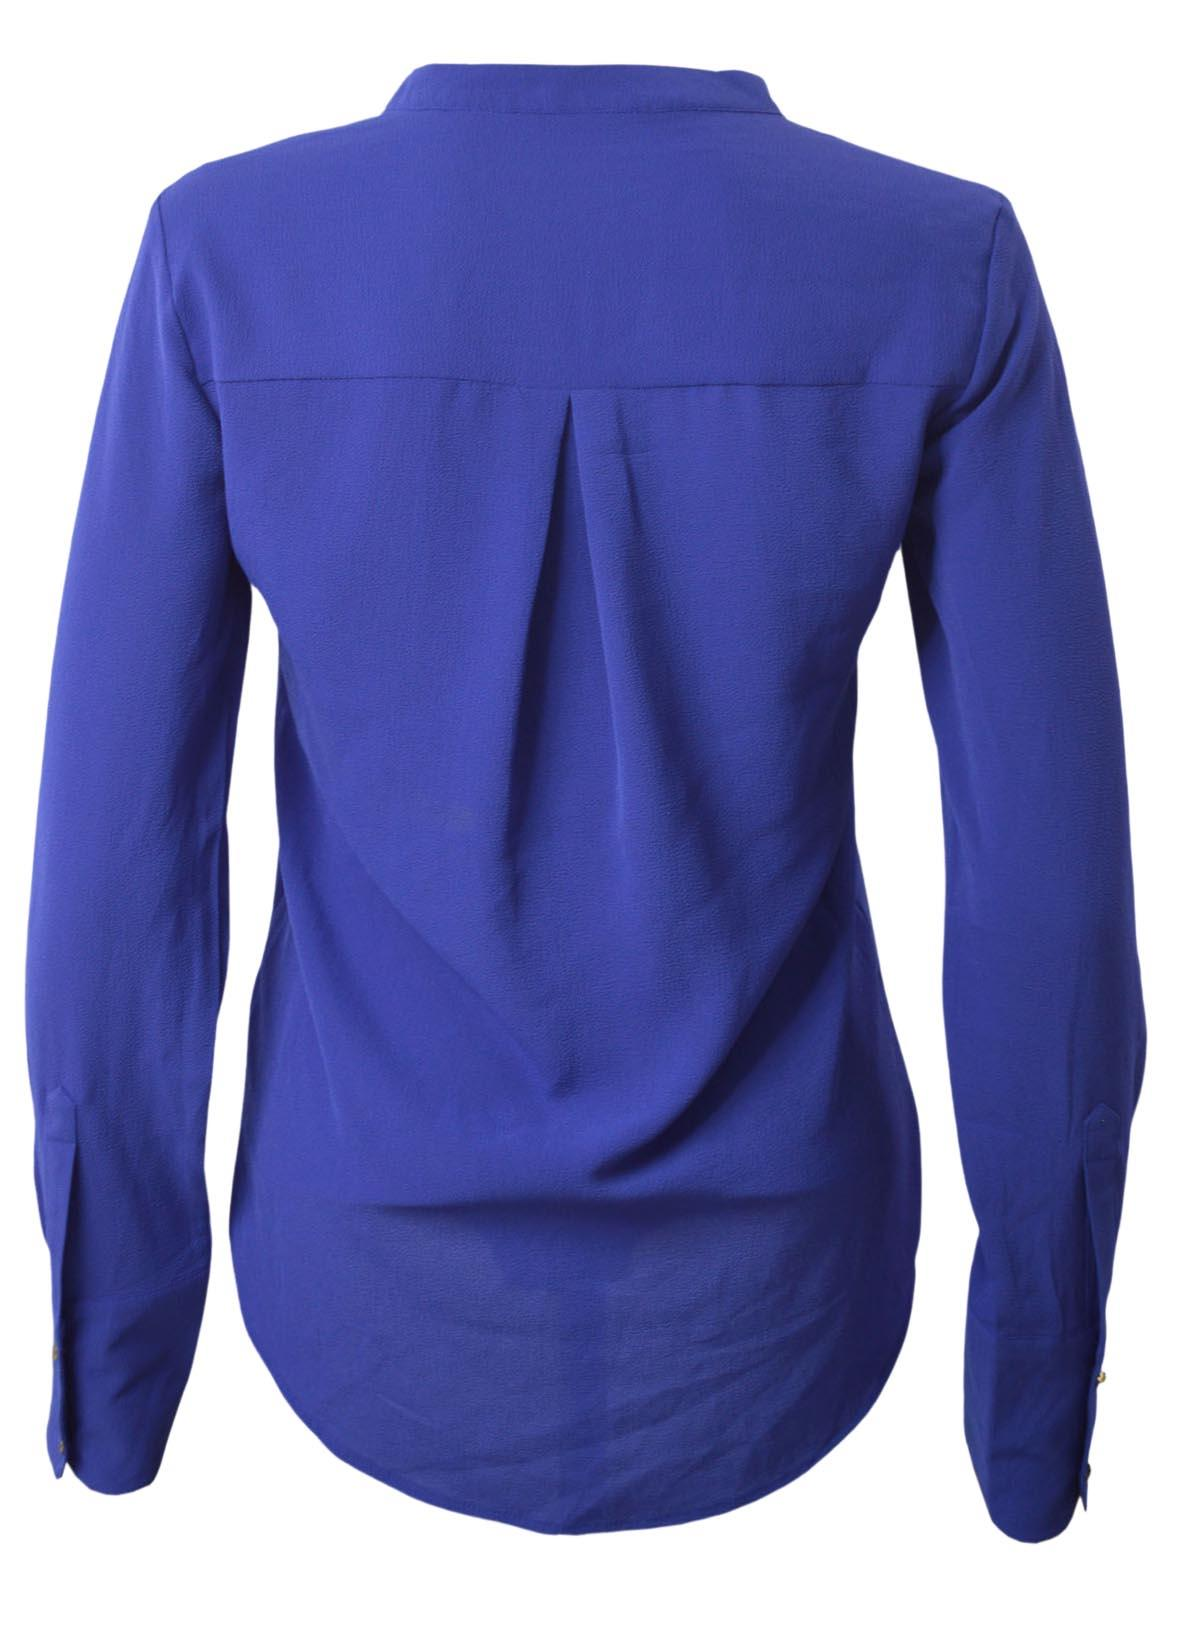 NEW-Ex-M-amp-S-Ladies-Long-Sleeve-V-Neck-Crepe-Tunic-Office-Blouse-Size-6-18 thumbnail 9